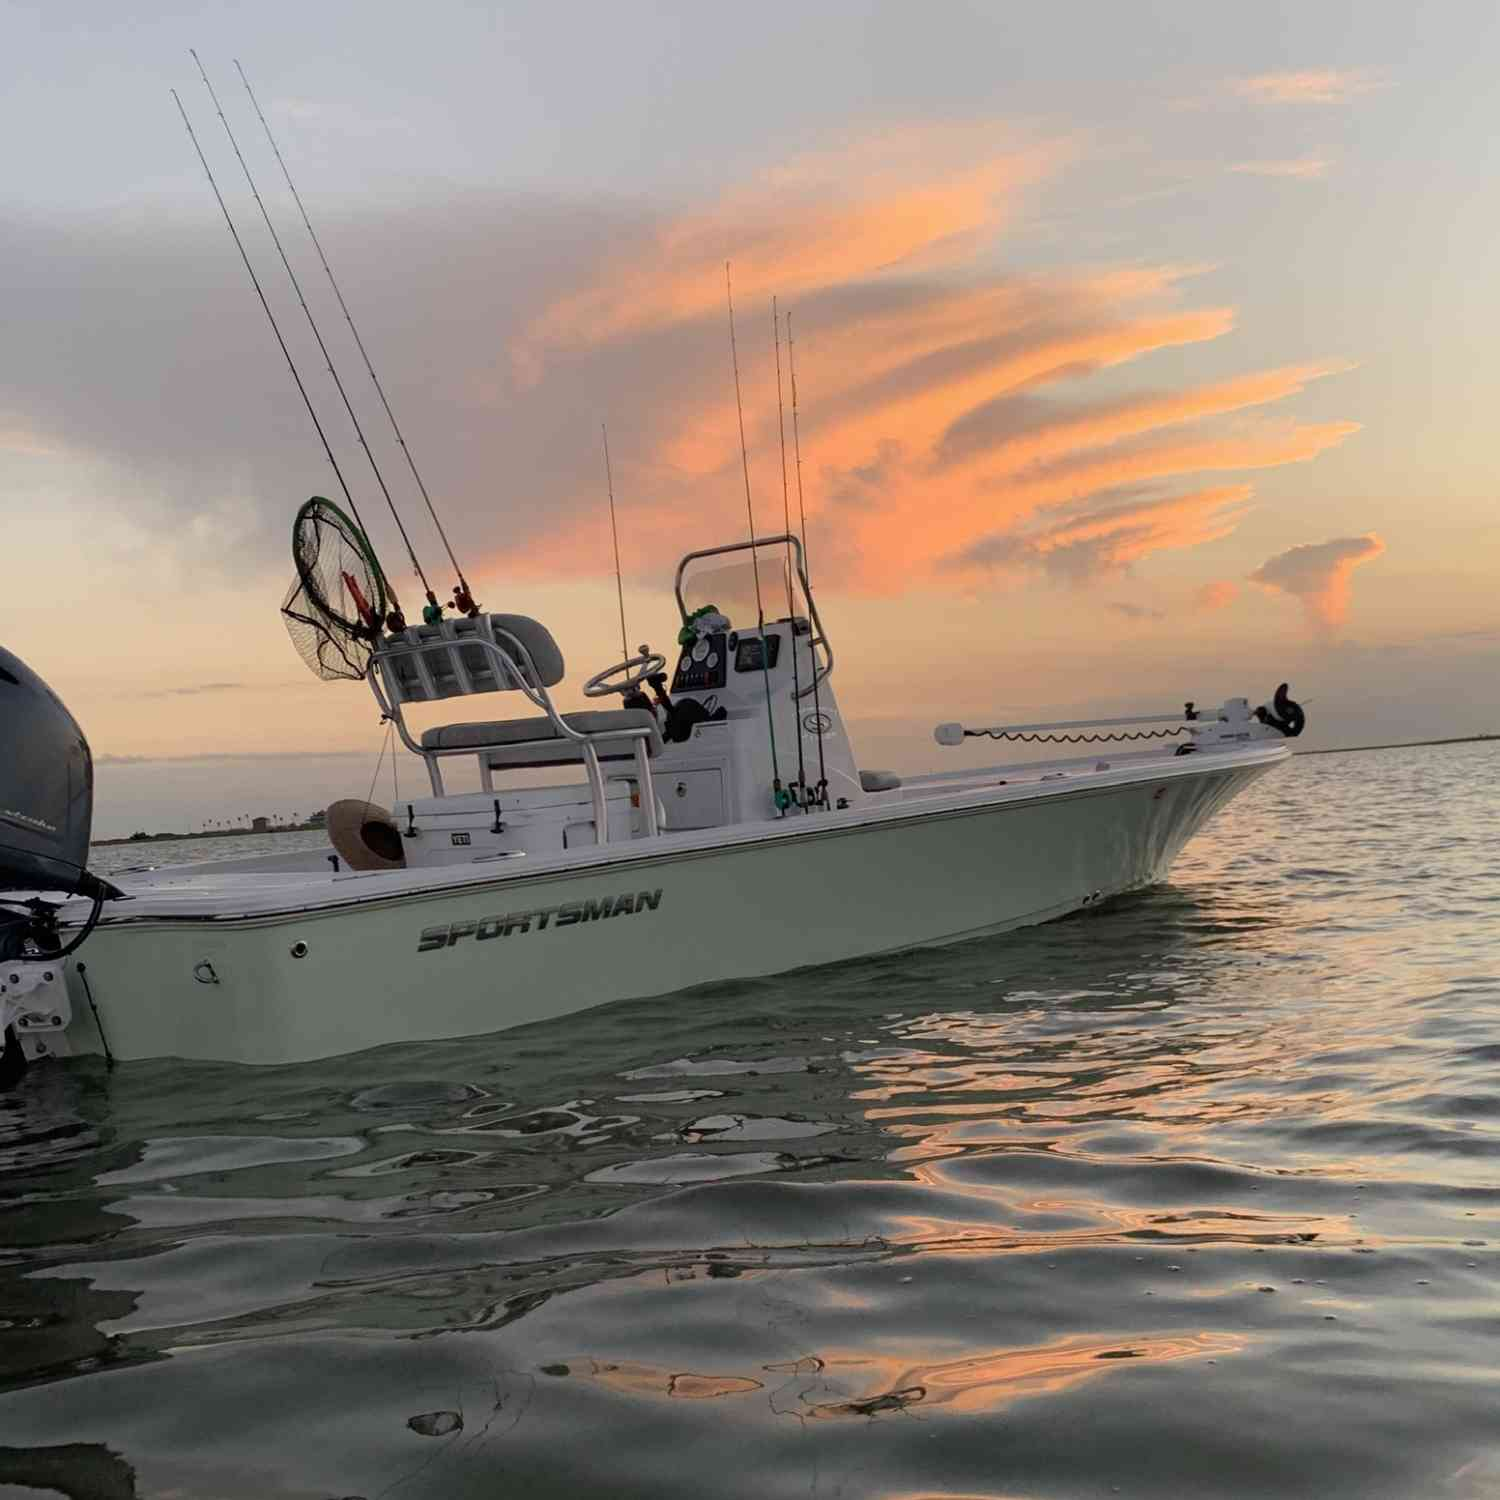 Title: Sunset Dreaming... - On board their Sportsman Tournament 214 SBX Bay Boat - Location: Freeport, Tx. Participating in the Photo Contest #SportsmanDecember2020